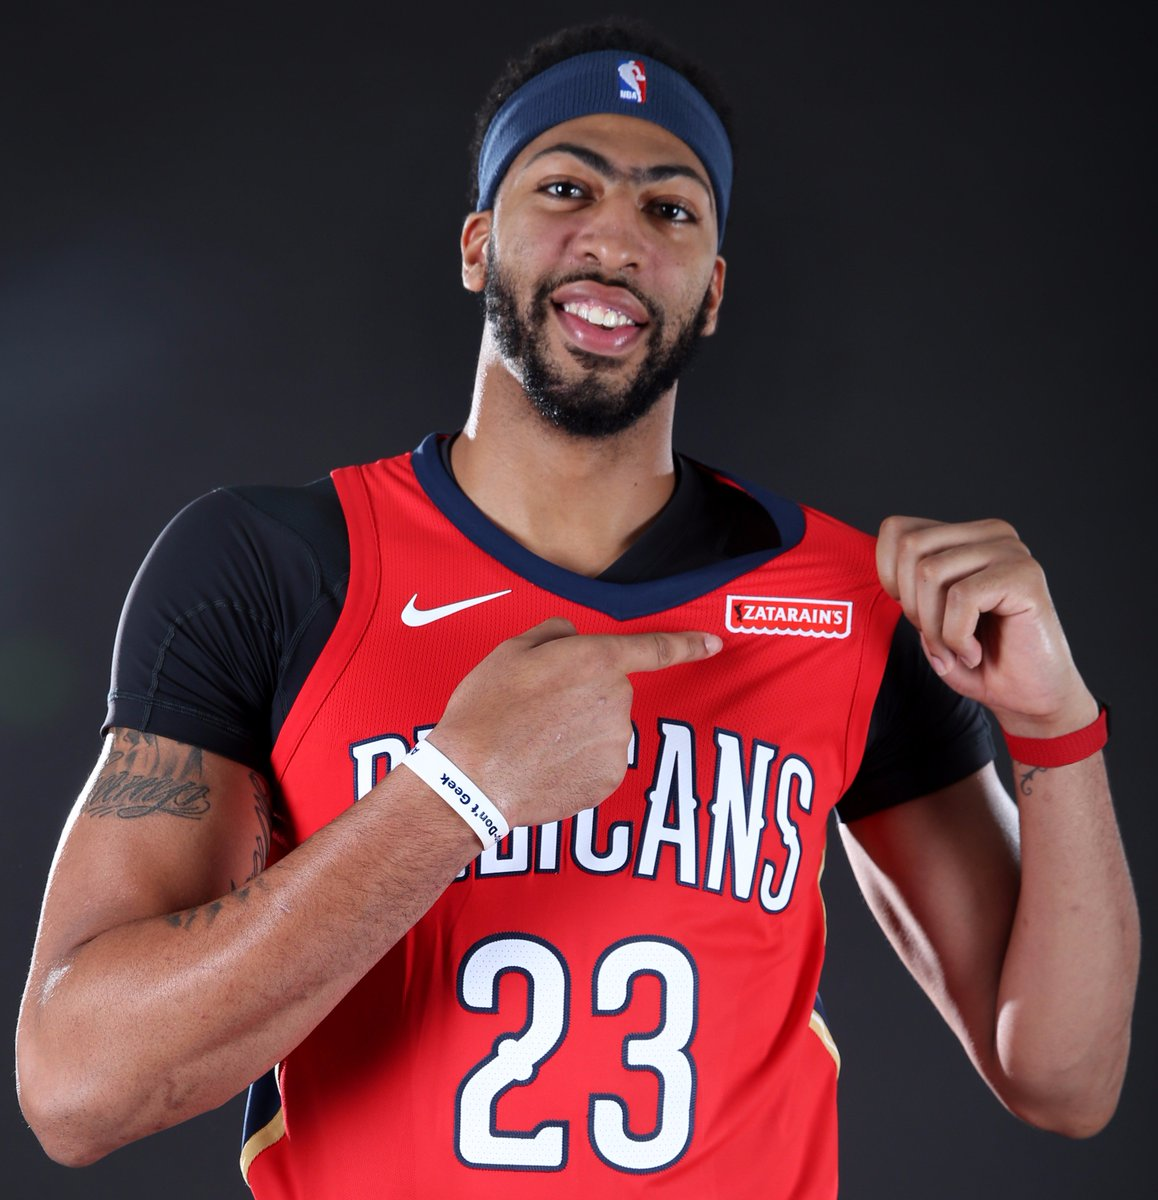 New Orleans Pelicans on Twitter: